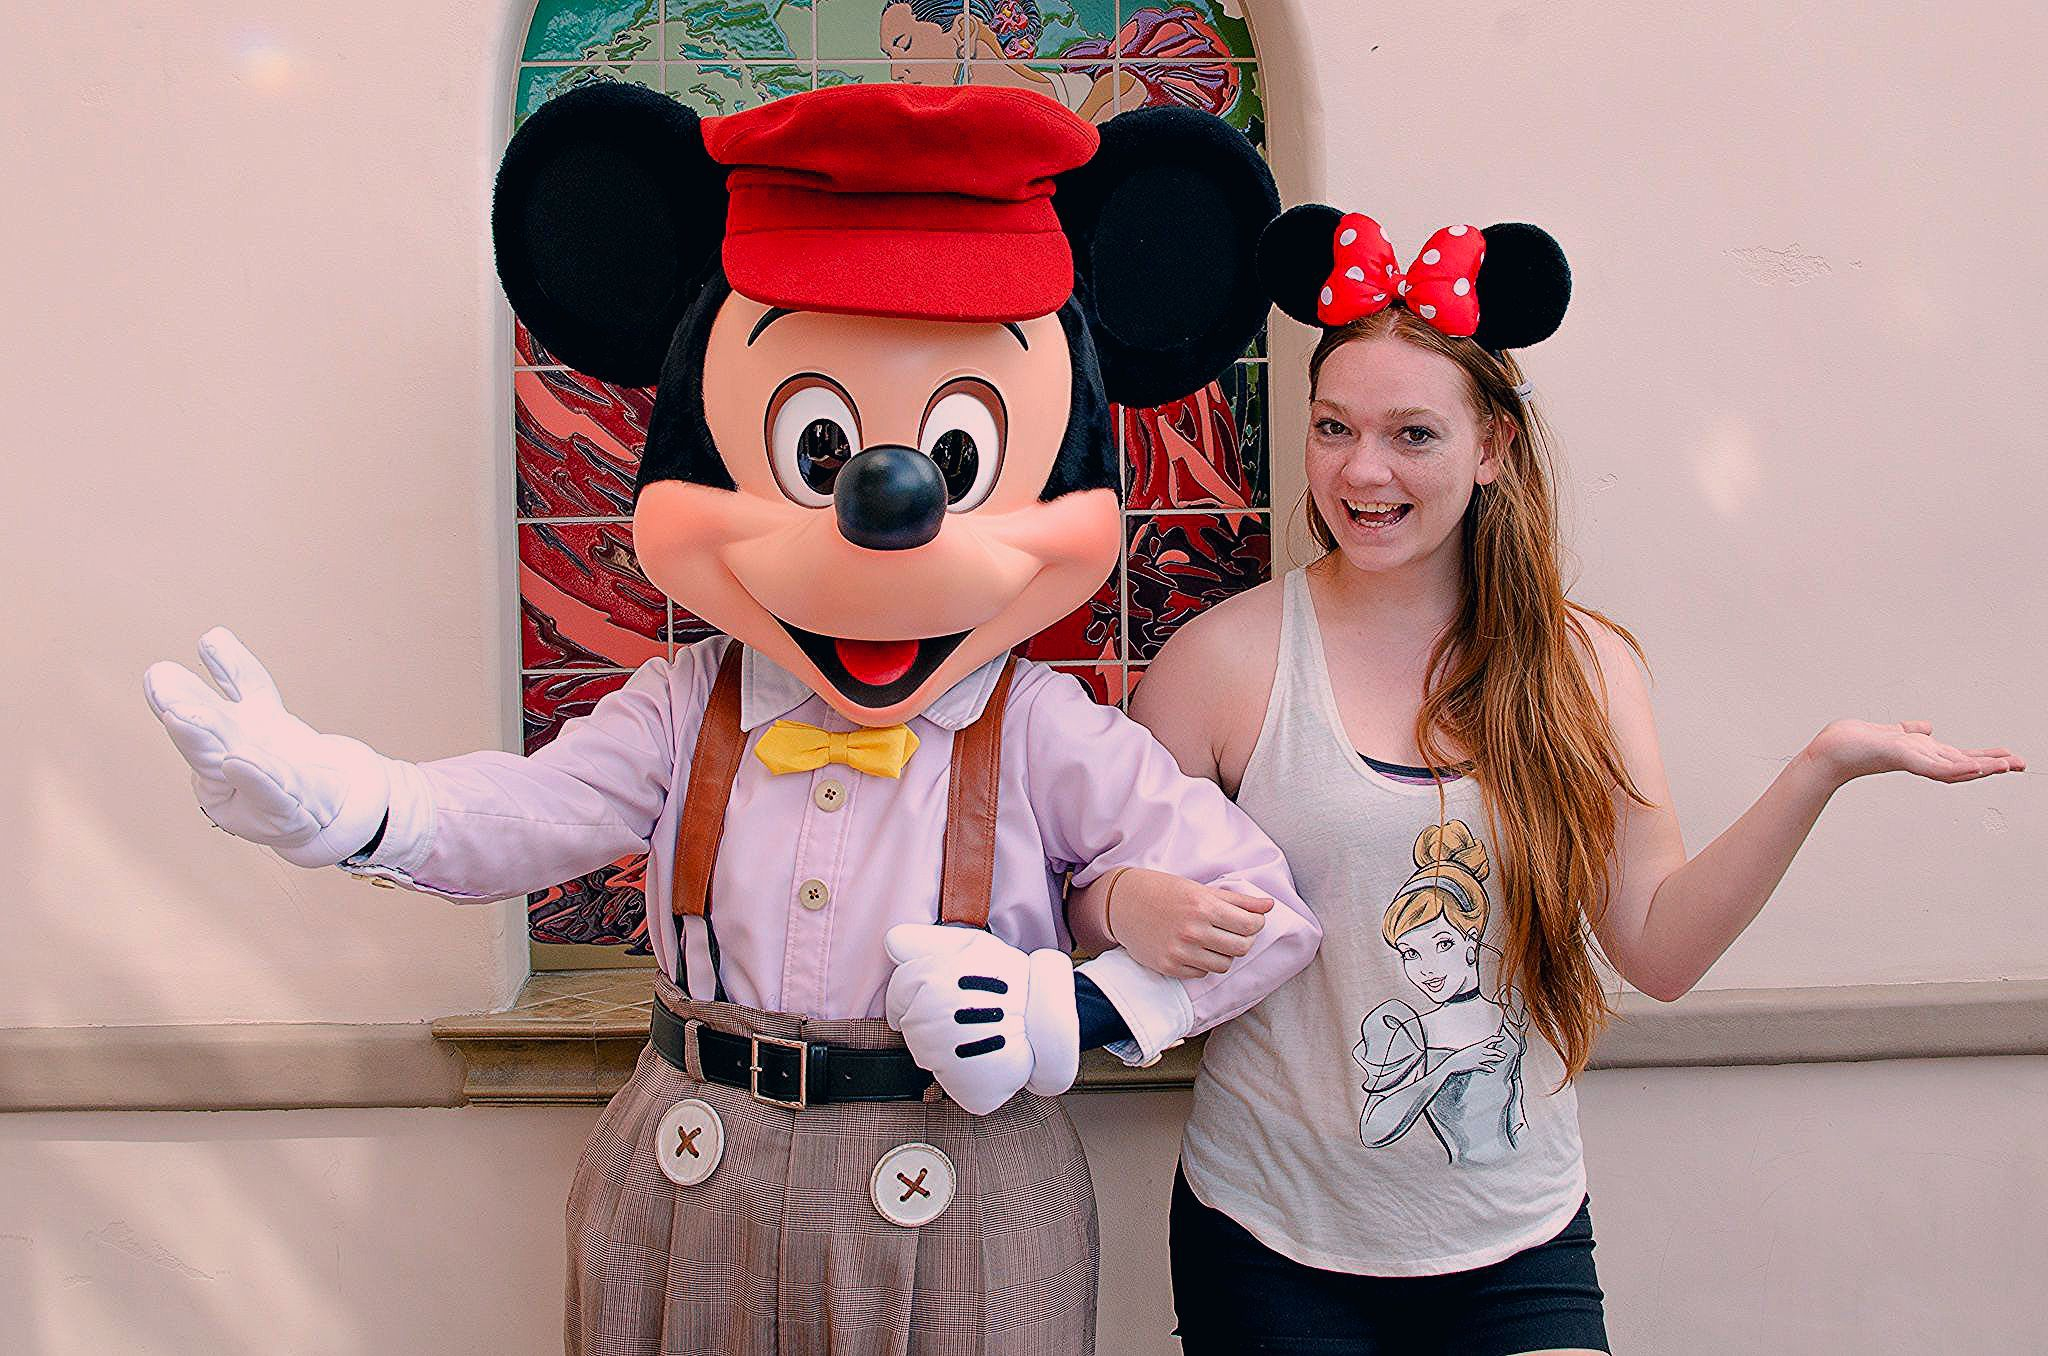 Photo of 1 Day At Disneyland: Tips for the Most Magical Day